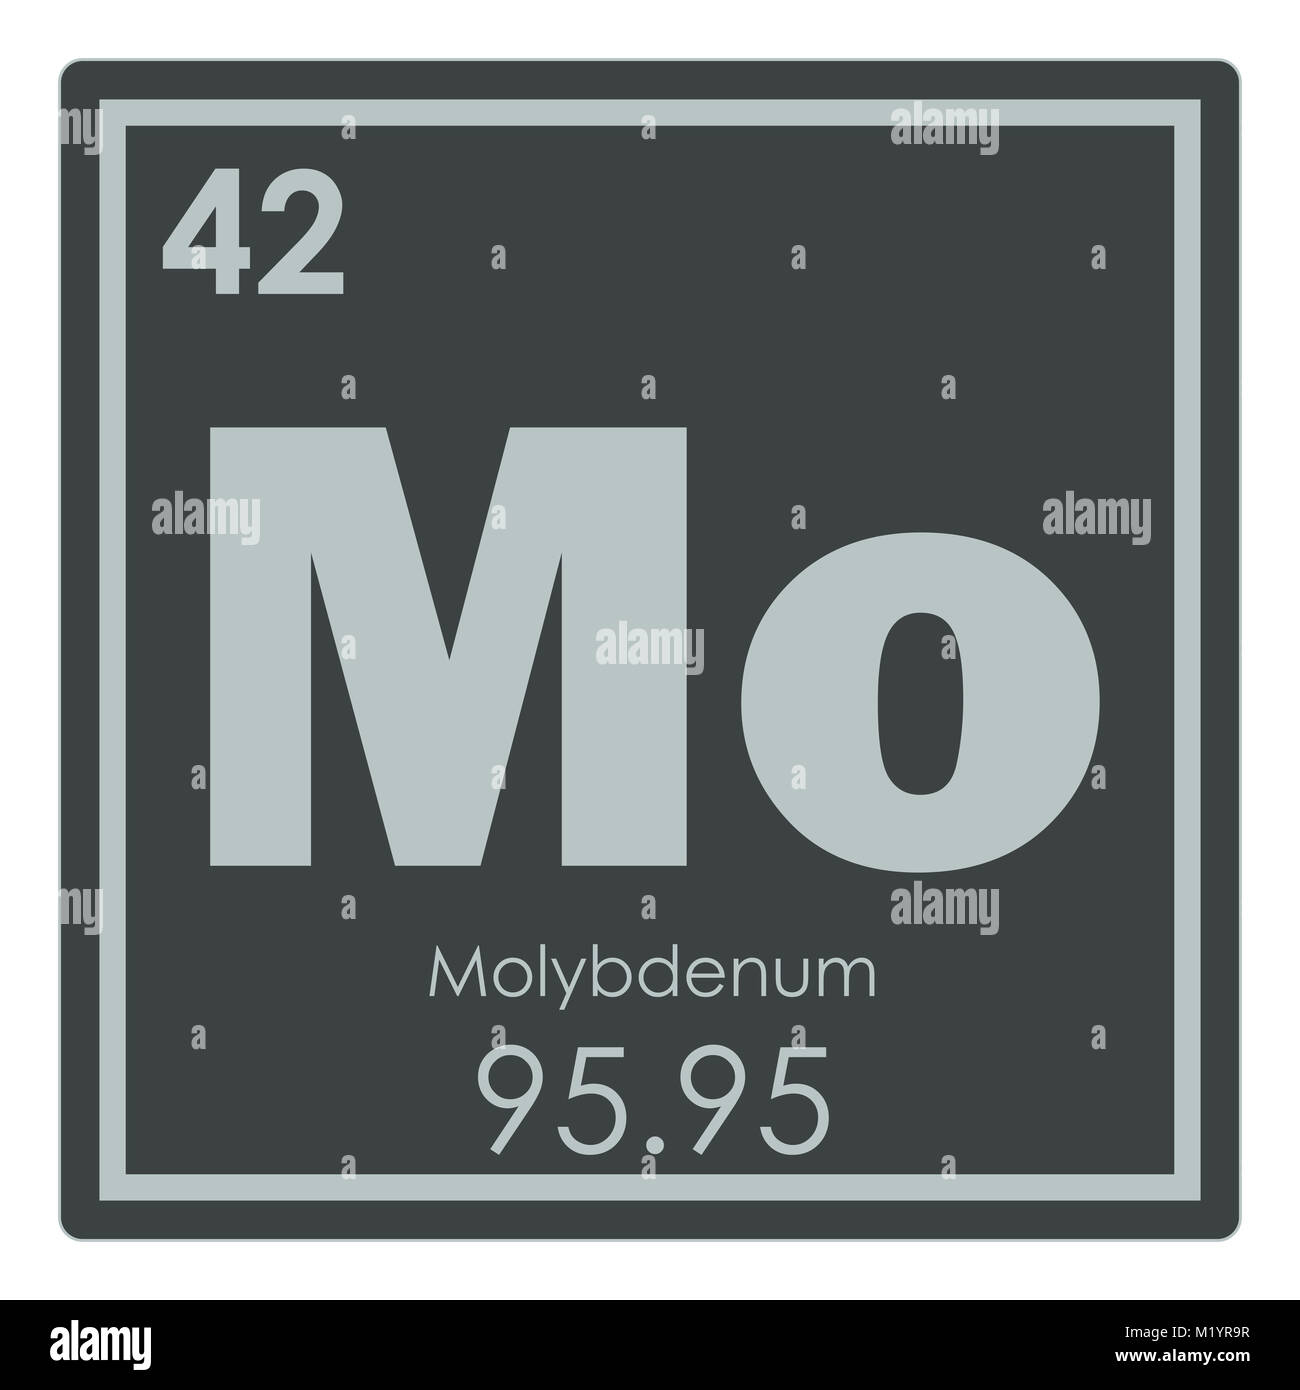 Molybdenum Chemical Element Periodic Table Science Symbol Stock